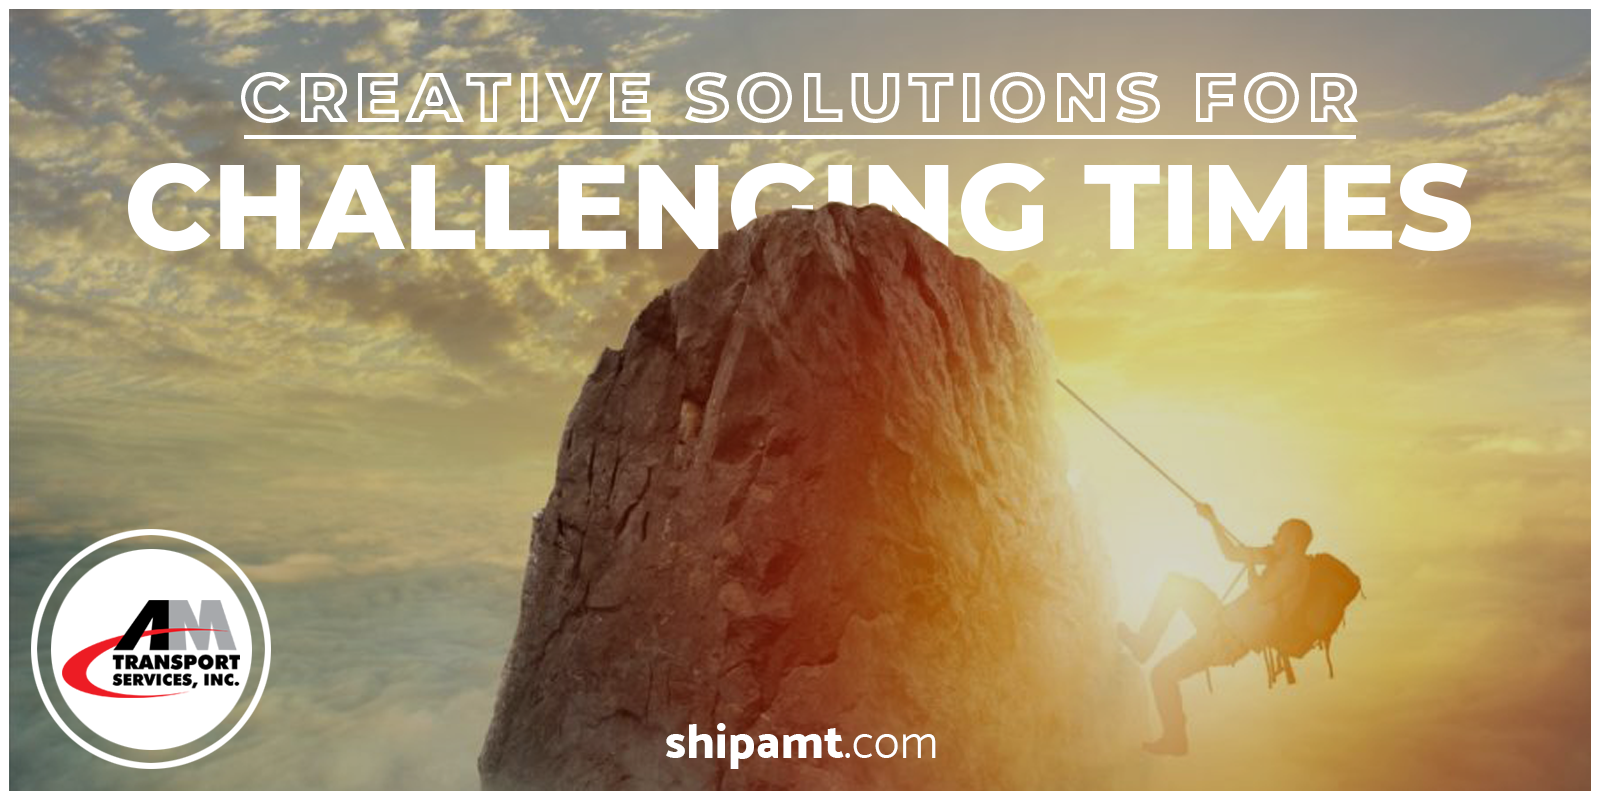 Picture of mountain climber with headline: Creative Solutions for Challenging Times